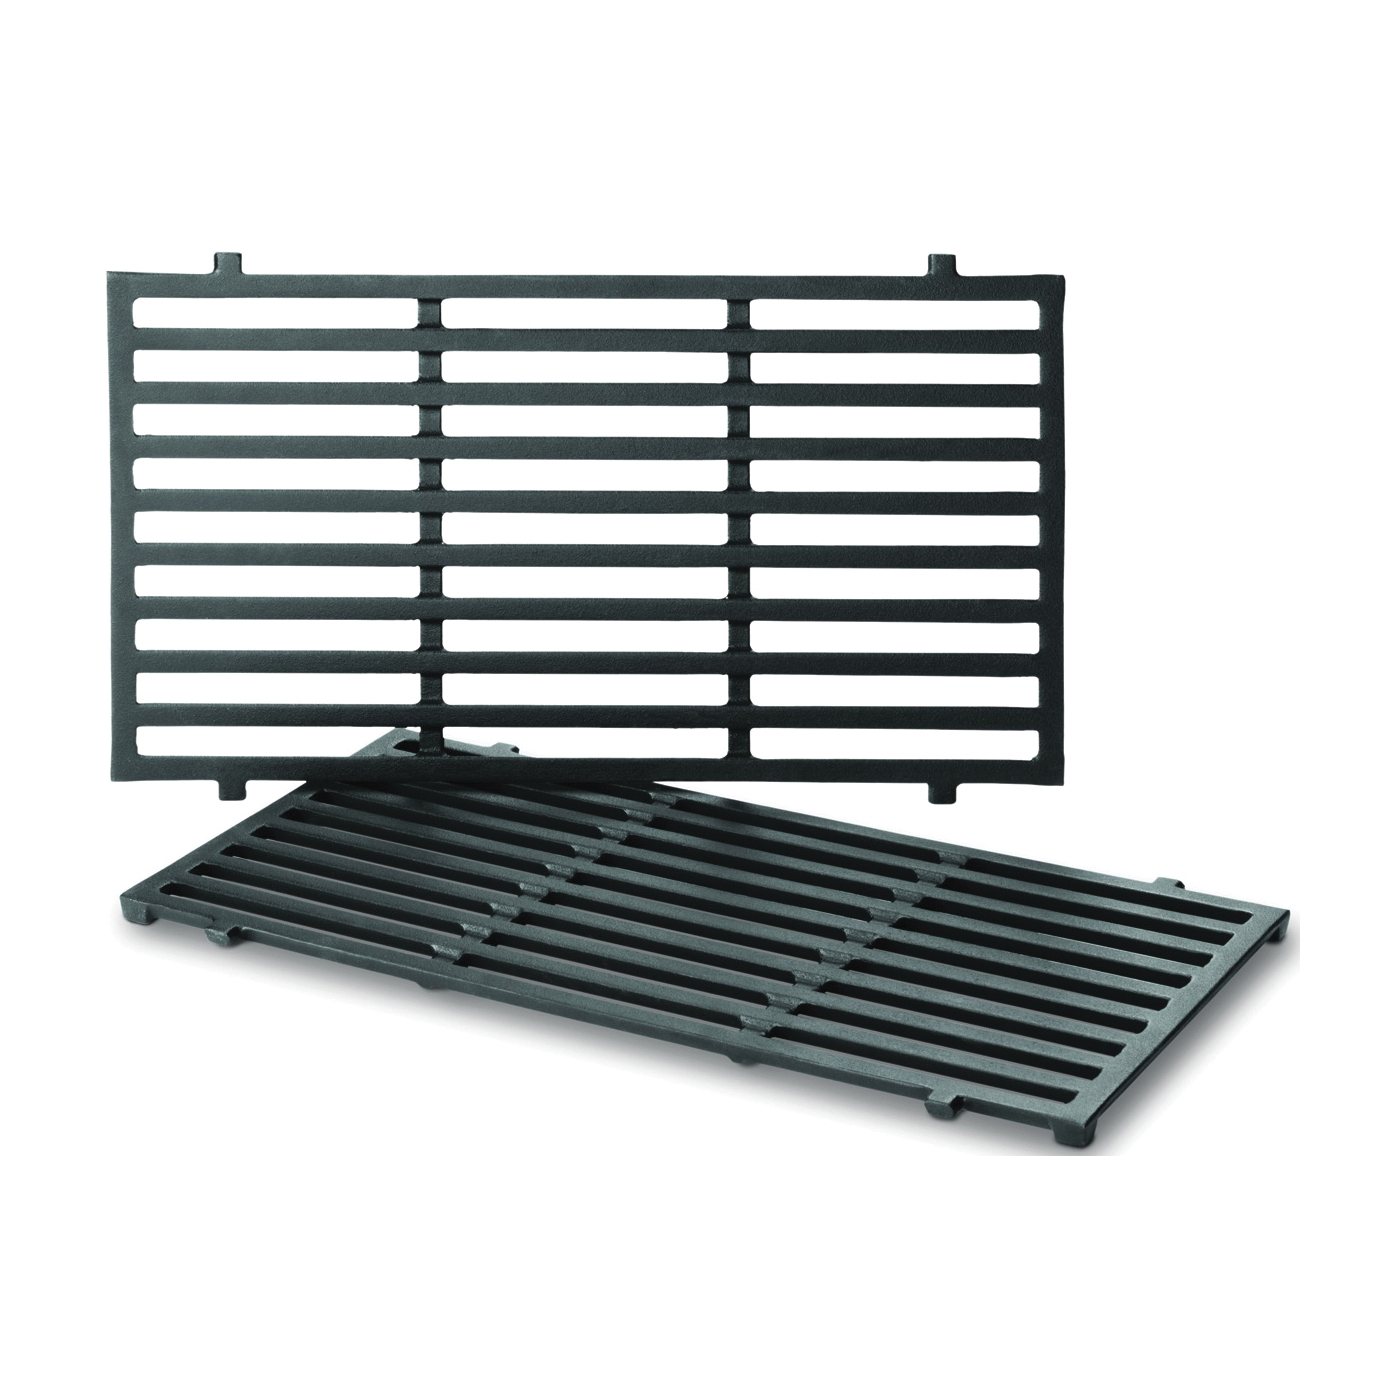 Picture of Weber 7637 Cooking Grate, 17-1/2 in L, 10-1/2 in W, Cast Iron, Enamel-Coated